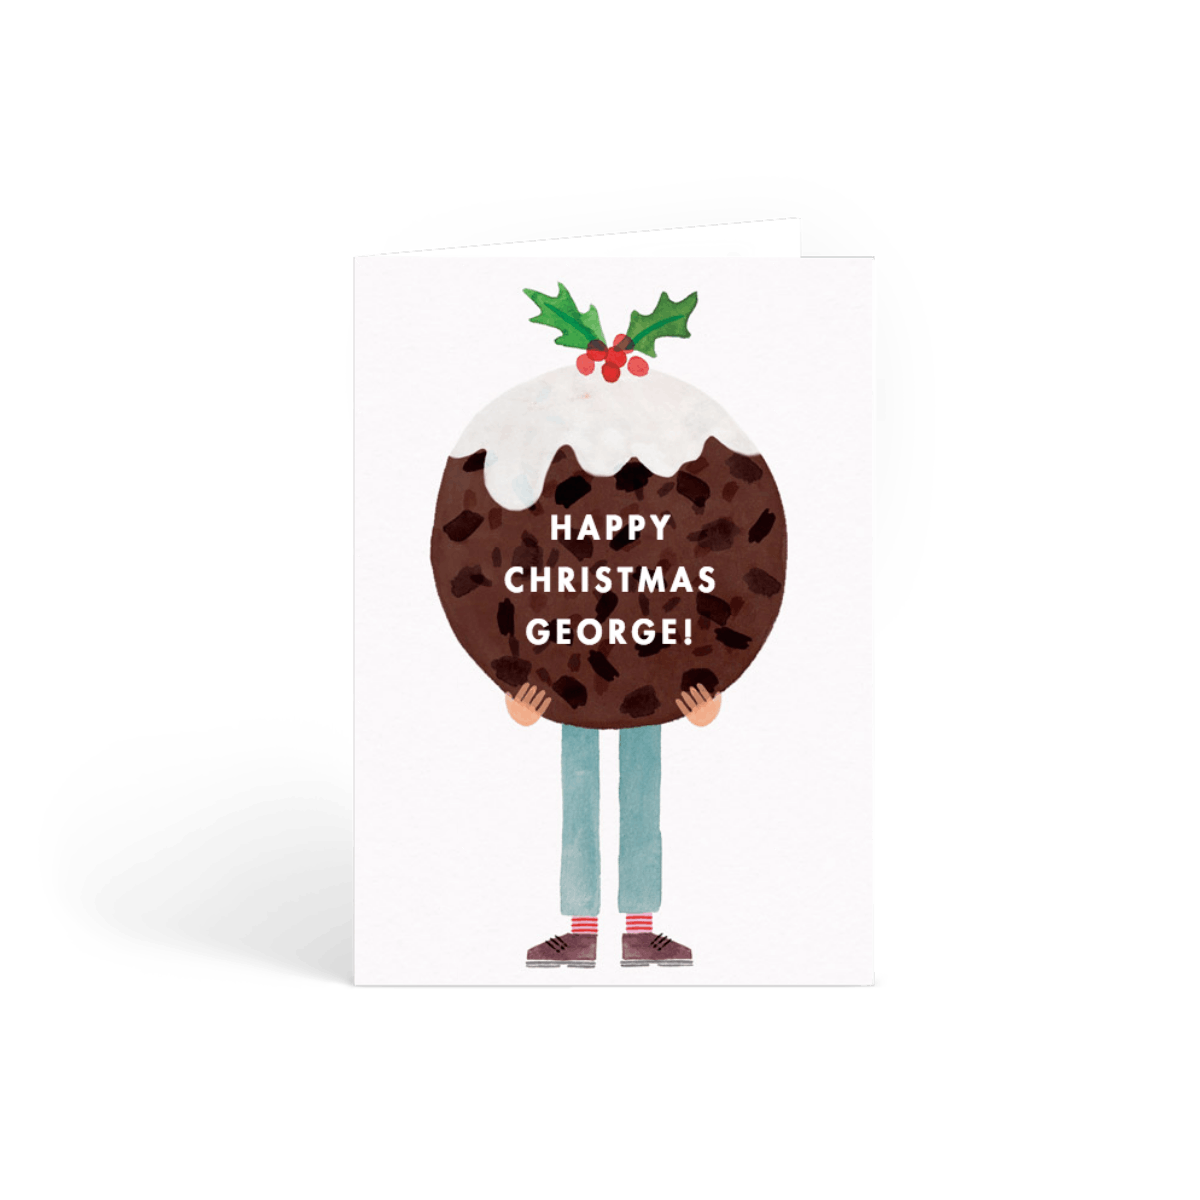 Https%3a%2f%2fwww.papier.com%2fproduct image%2f8493%2f2%2fchristmas pudding boy 2105 avant 1570560507.png?ixlib=rb 1.1